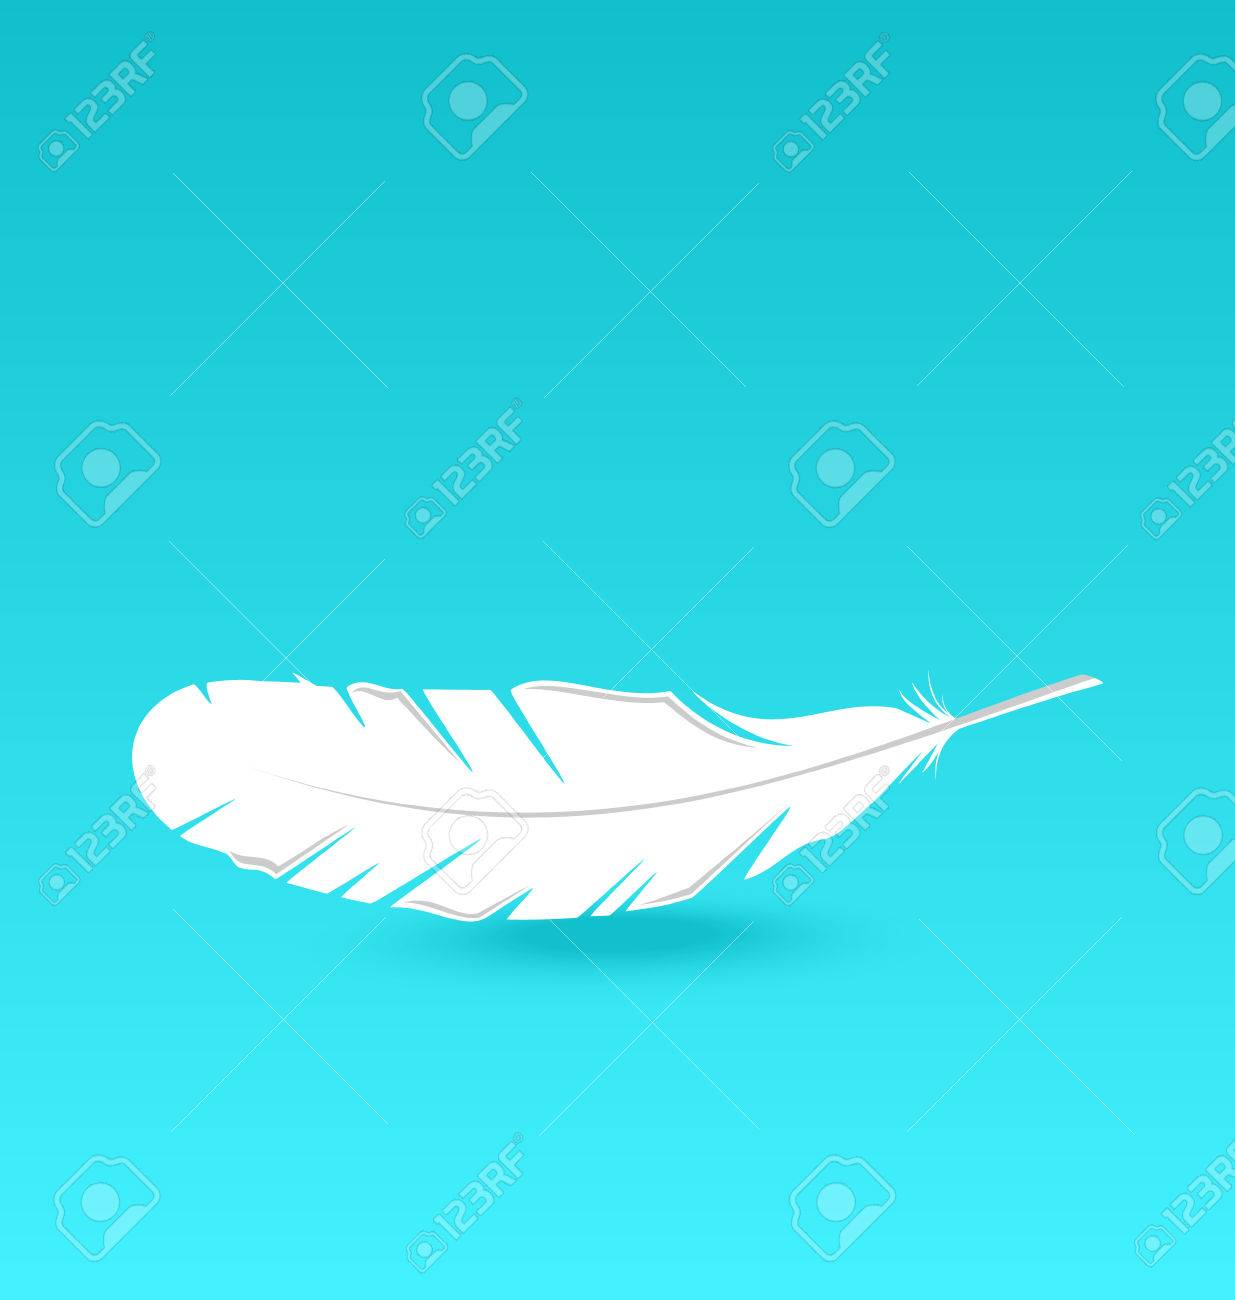 Illustration white feather falling - vector Stock Vector - 24211391